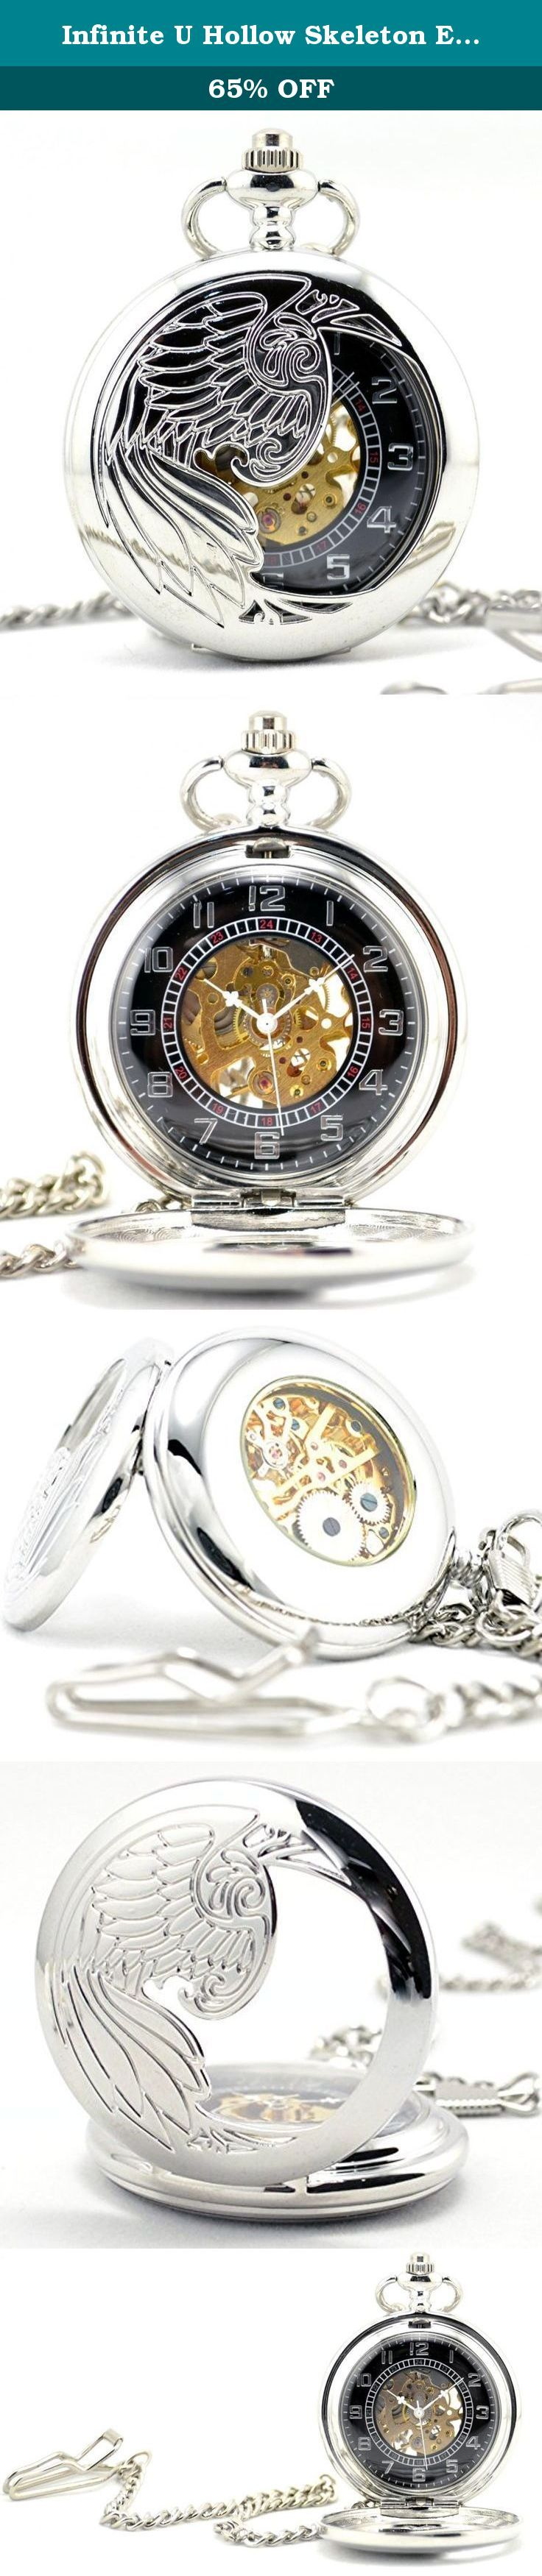 Infinite U Hollow Skeleton Eagle/Angel/Phoenix Pendant Necklace Steel Mechanical Pocket Watch -Silver. Description: 1. 100% Brand New and High Quality! 2. Renaissance Antique Pocket Watch 3. Stainless Steel Alloy Watch Case 4. Hollow Skeleton Dial with Roman Numerals Display. 5. Daily Water Resistant (Note: only resistant splash or drip, not suitable for shower, swimming and diving.) Package Includes: 1* New Mechanical Pocket Watch, 1* Long Sweater Chain: 80cm (31.5 inches)(Gift) 1* Cow…